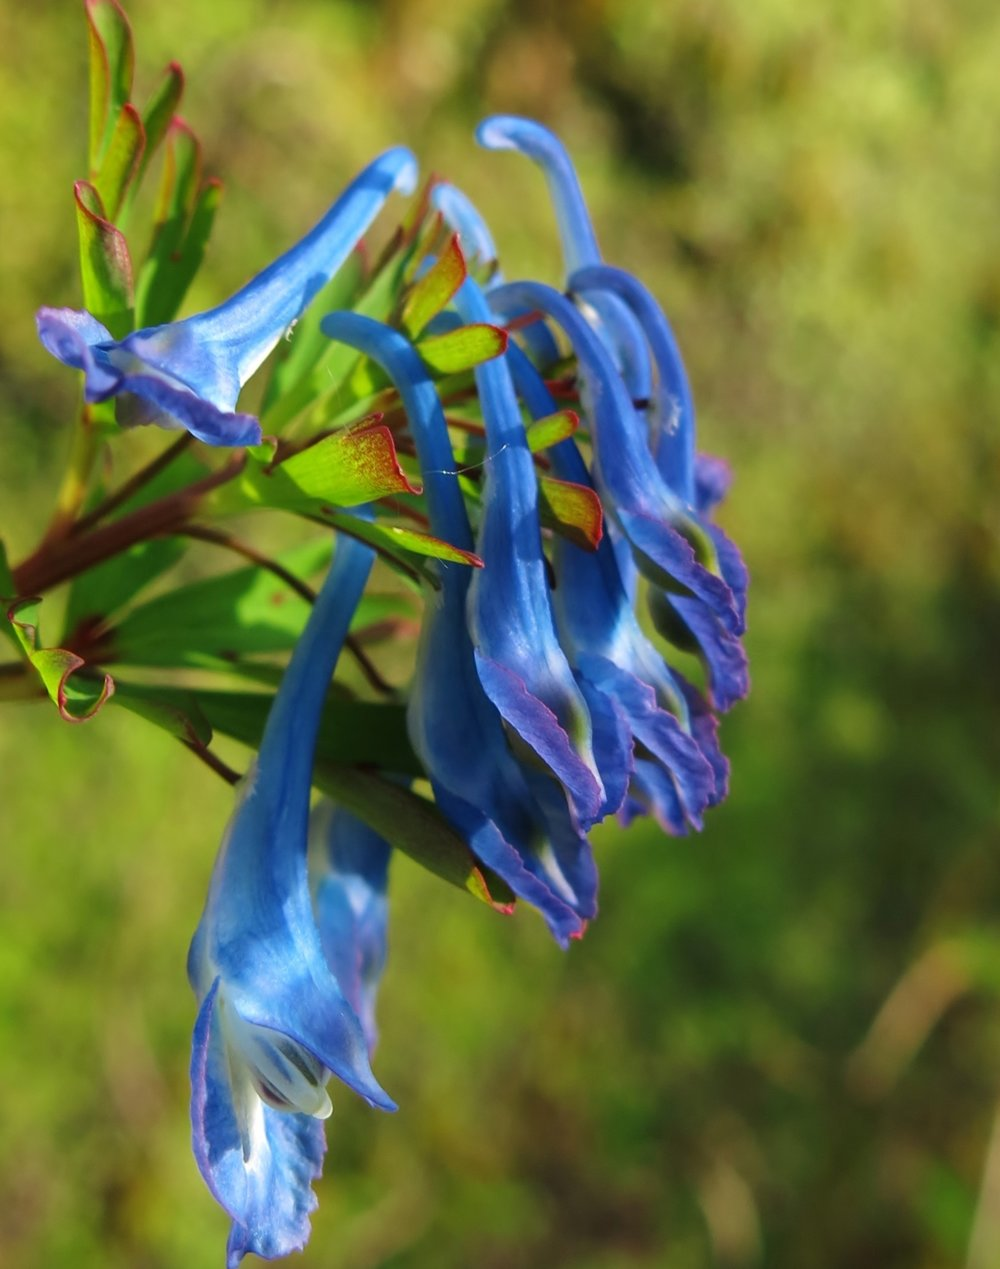 Plant a little bit of The Garden House today - How about a Corydalis Tory MP…